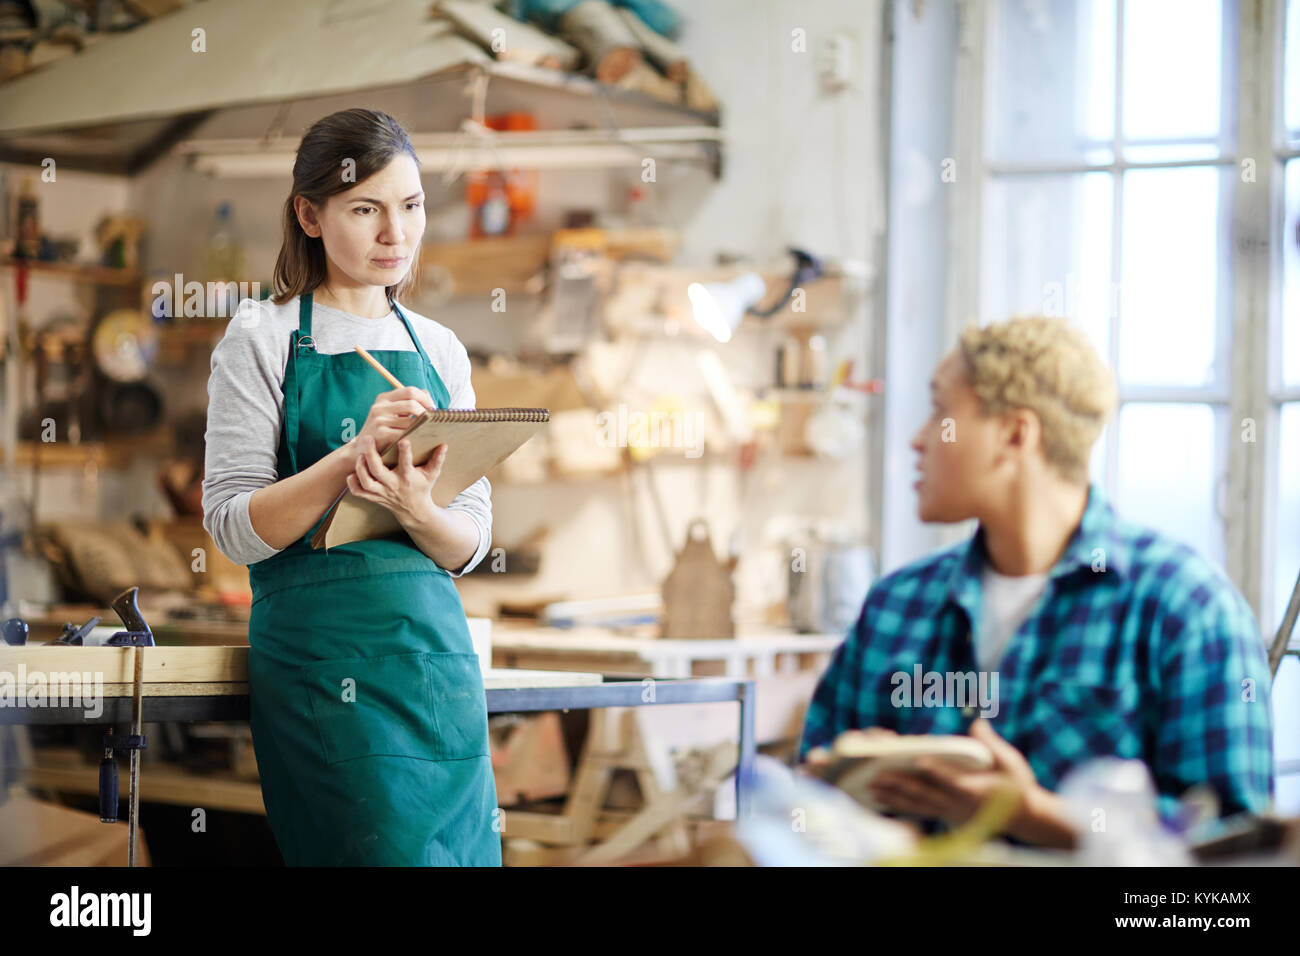 Working in group - Stock Image